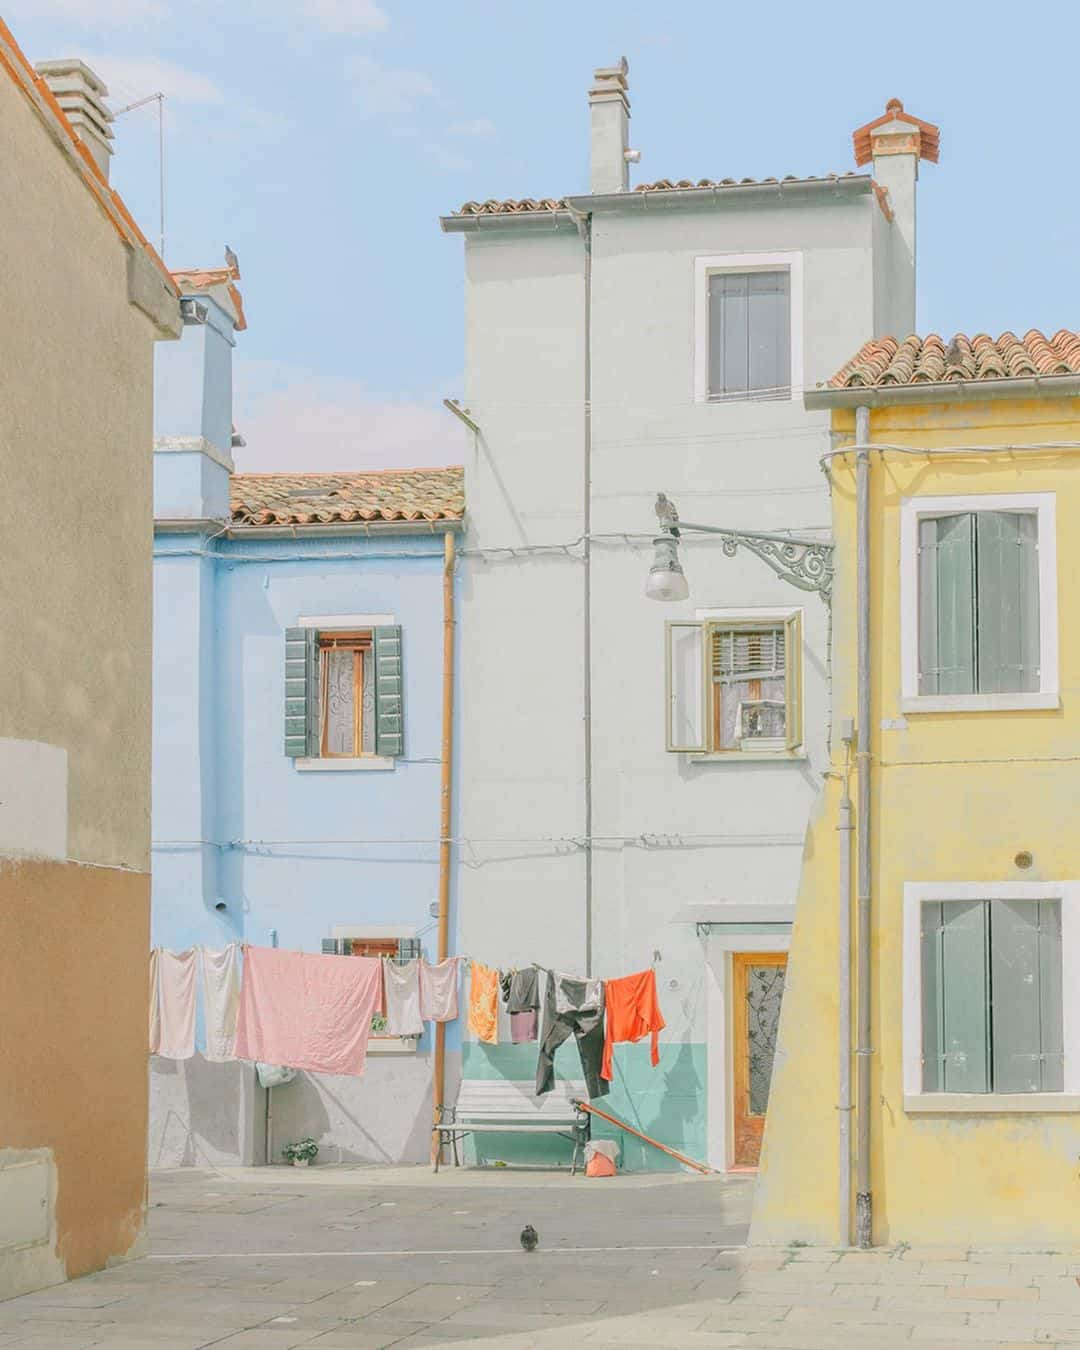 Fine Art Photographer Elegantly Captures Streets in Pastel Tones